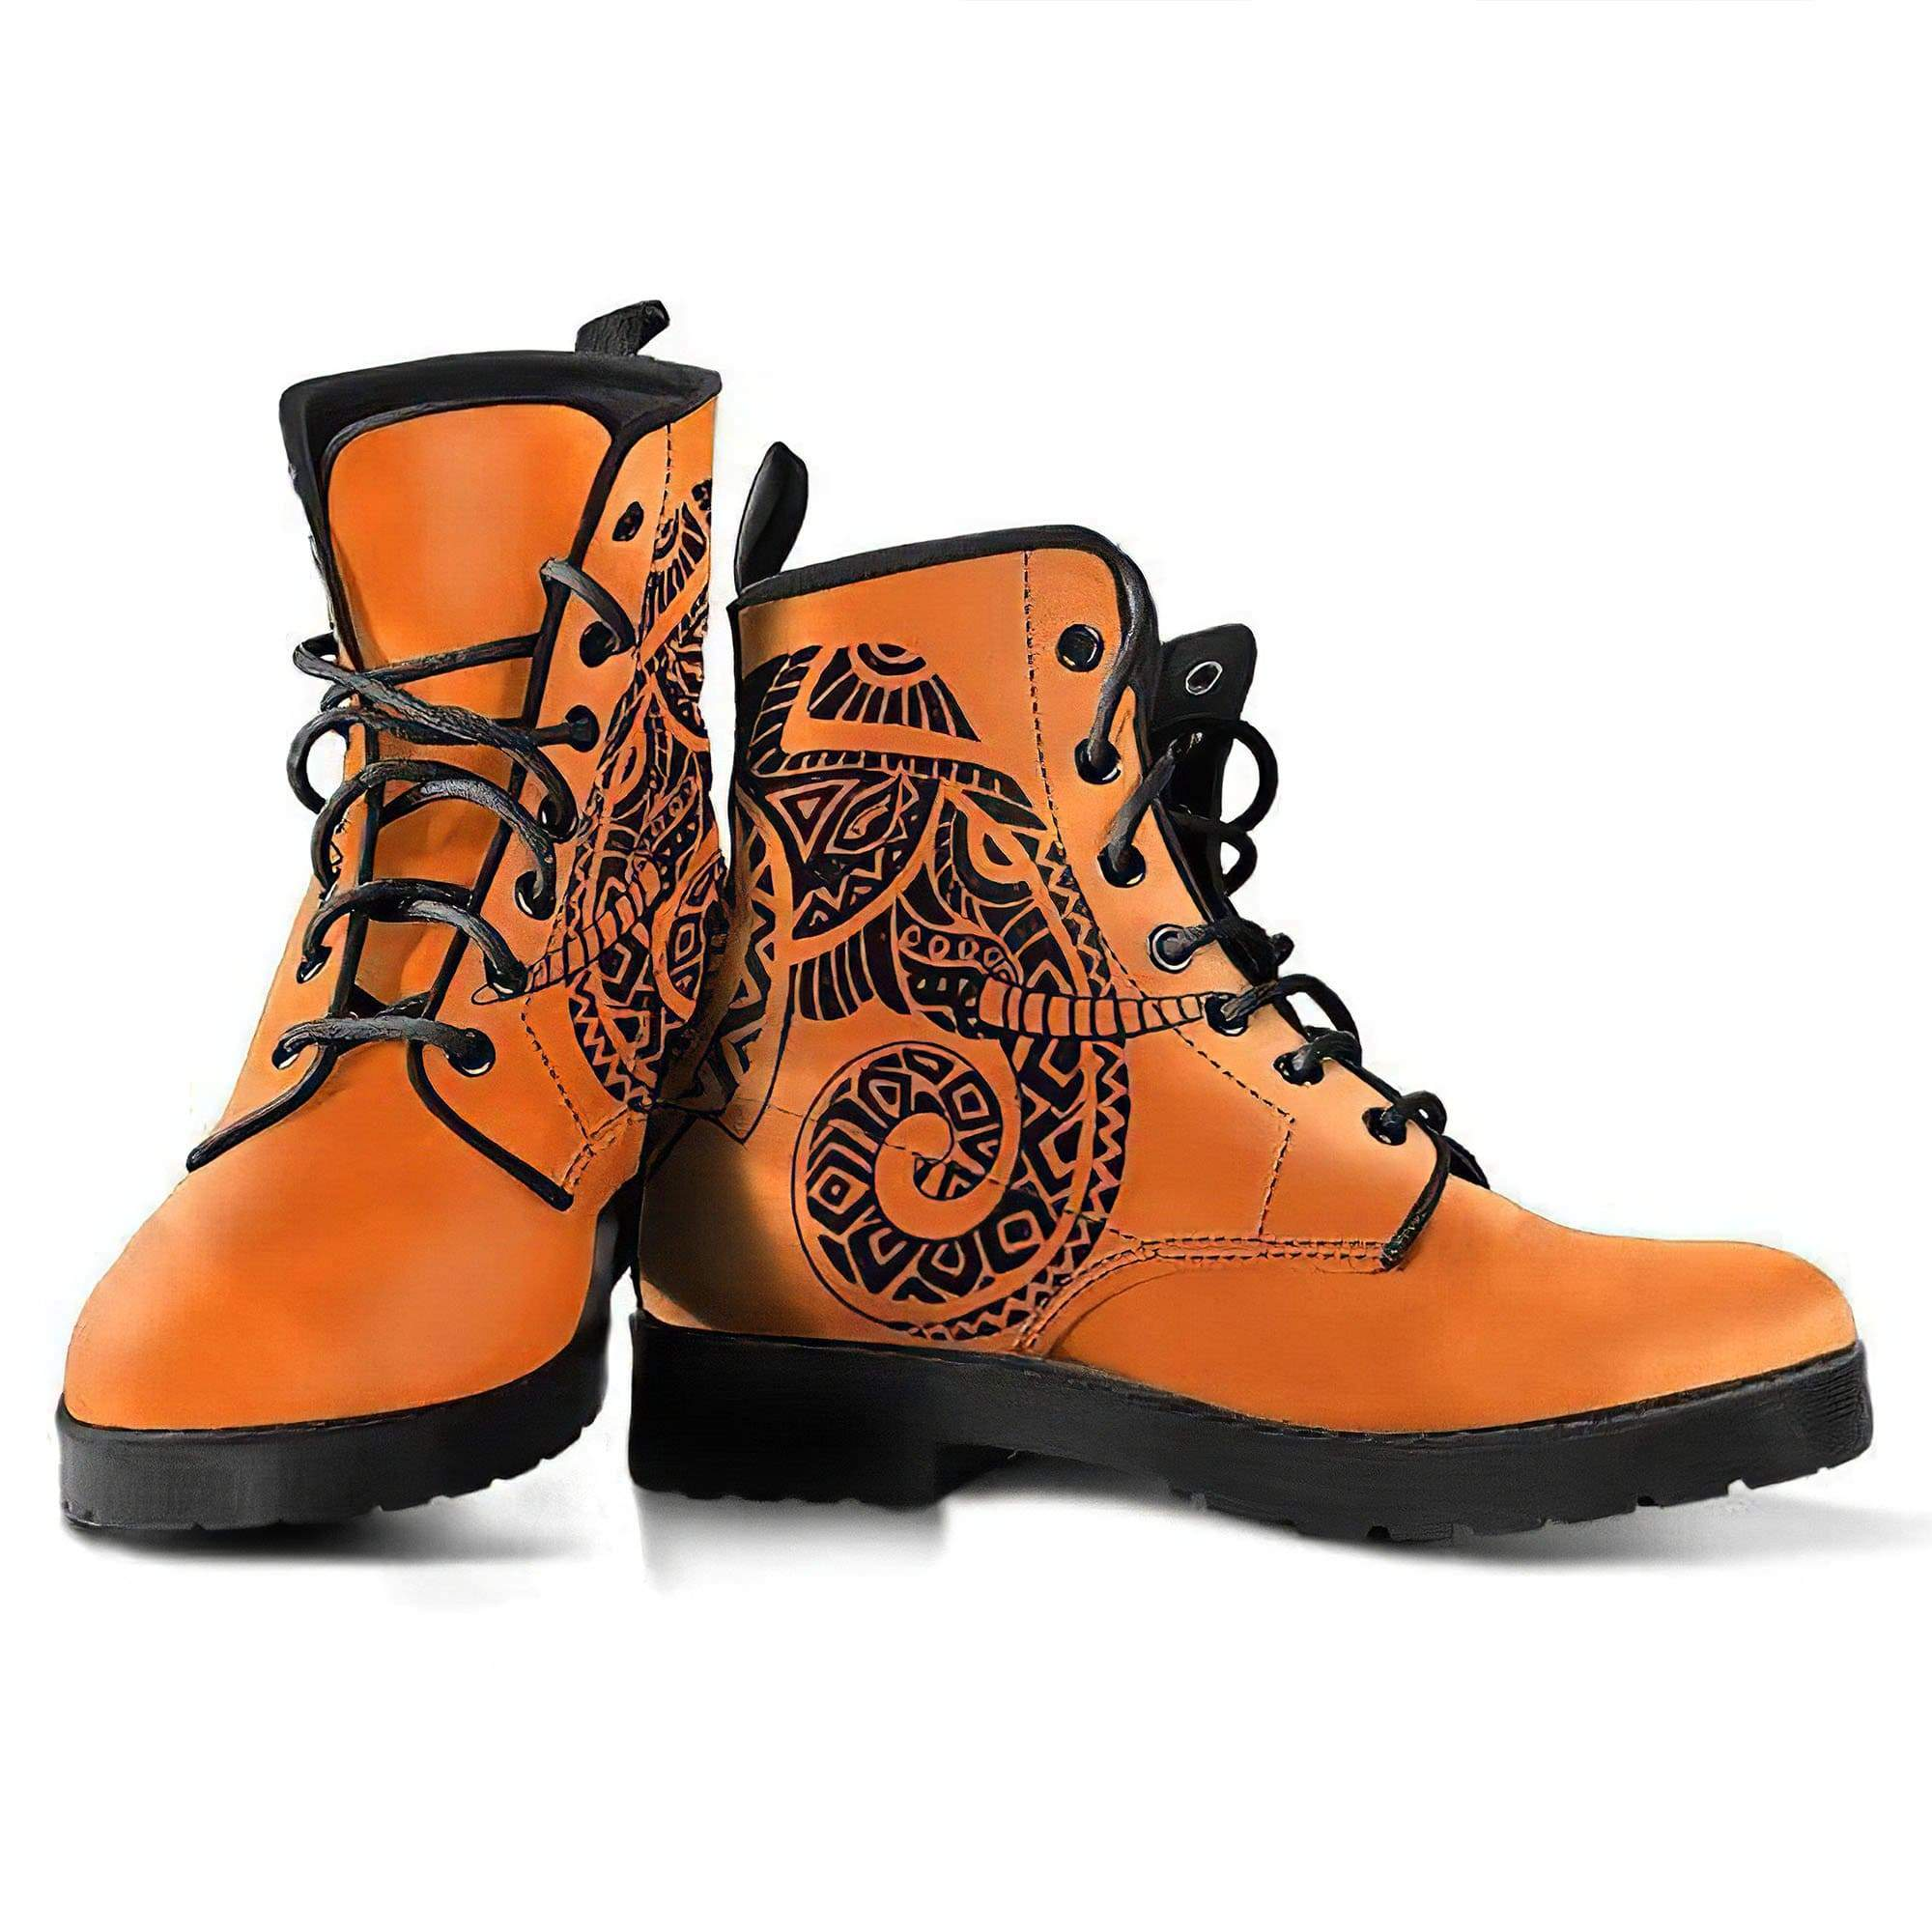 Tribal Totem 2 Women's Boots Vegan Friendly Leather Women's Leather Boots